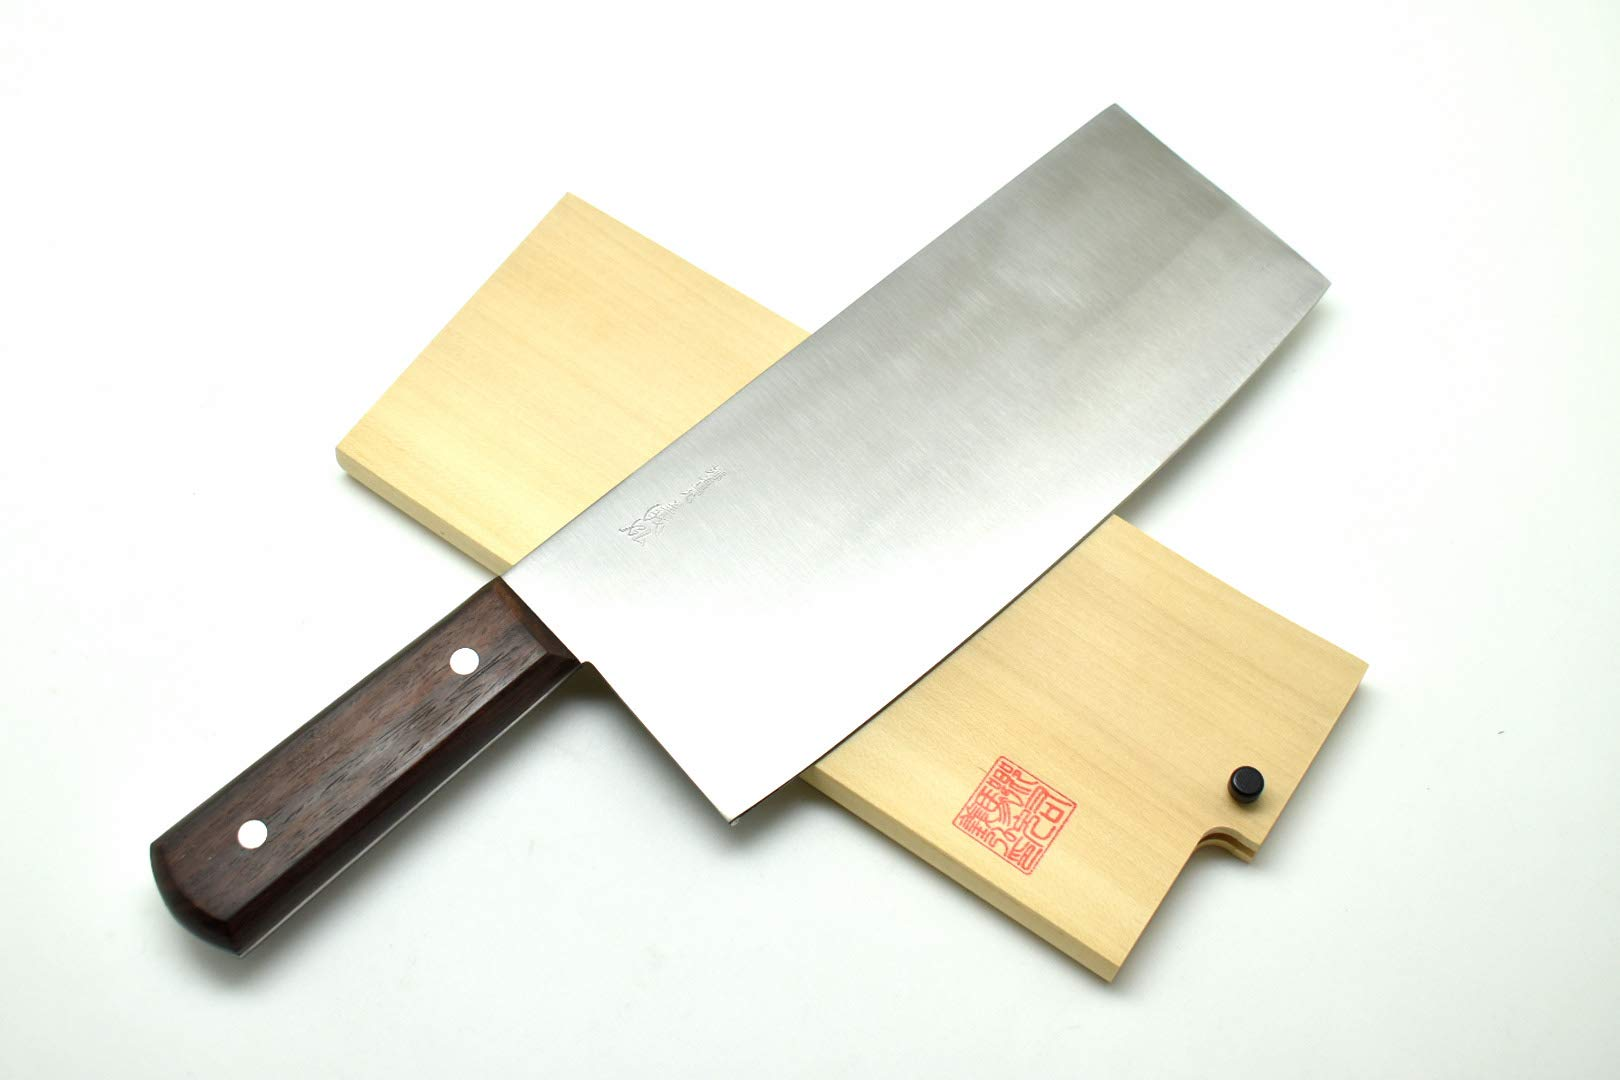 Yoshihiro Hi-Carbon Japan Steel(SK-4), HGB Chinese Cleaver Knife 220mm/8.7'', with Wooden Saya Cover by Yoshihiro